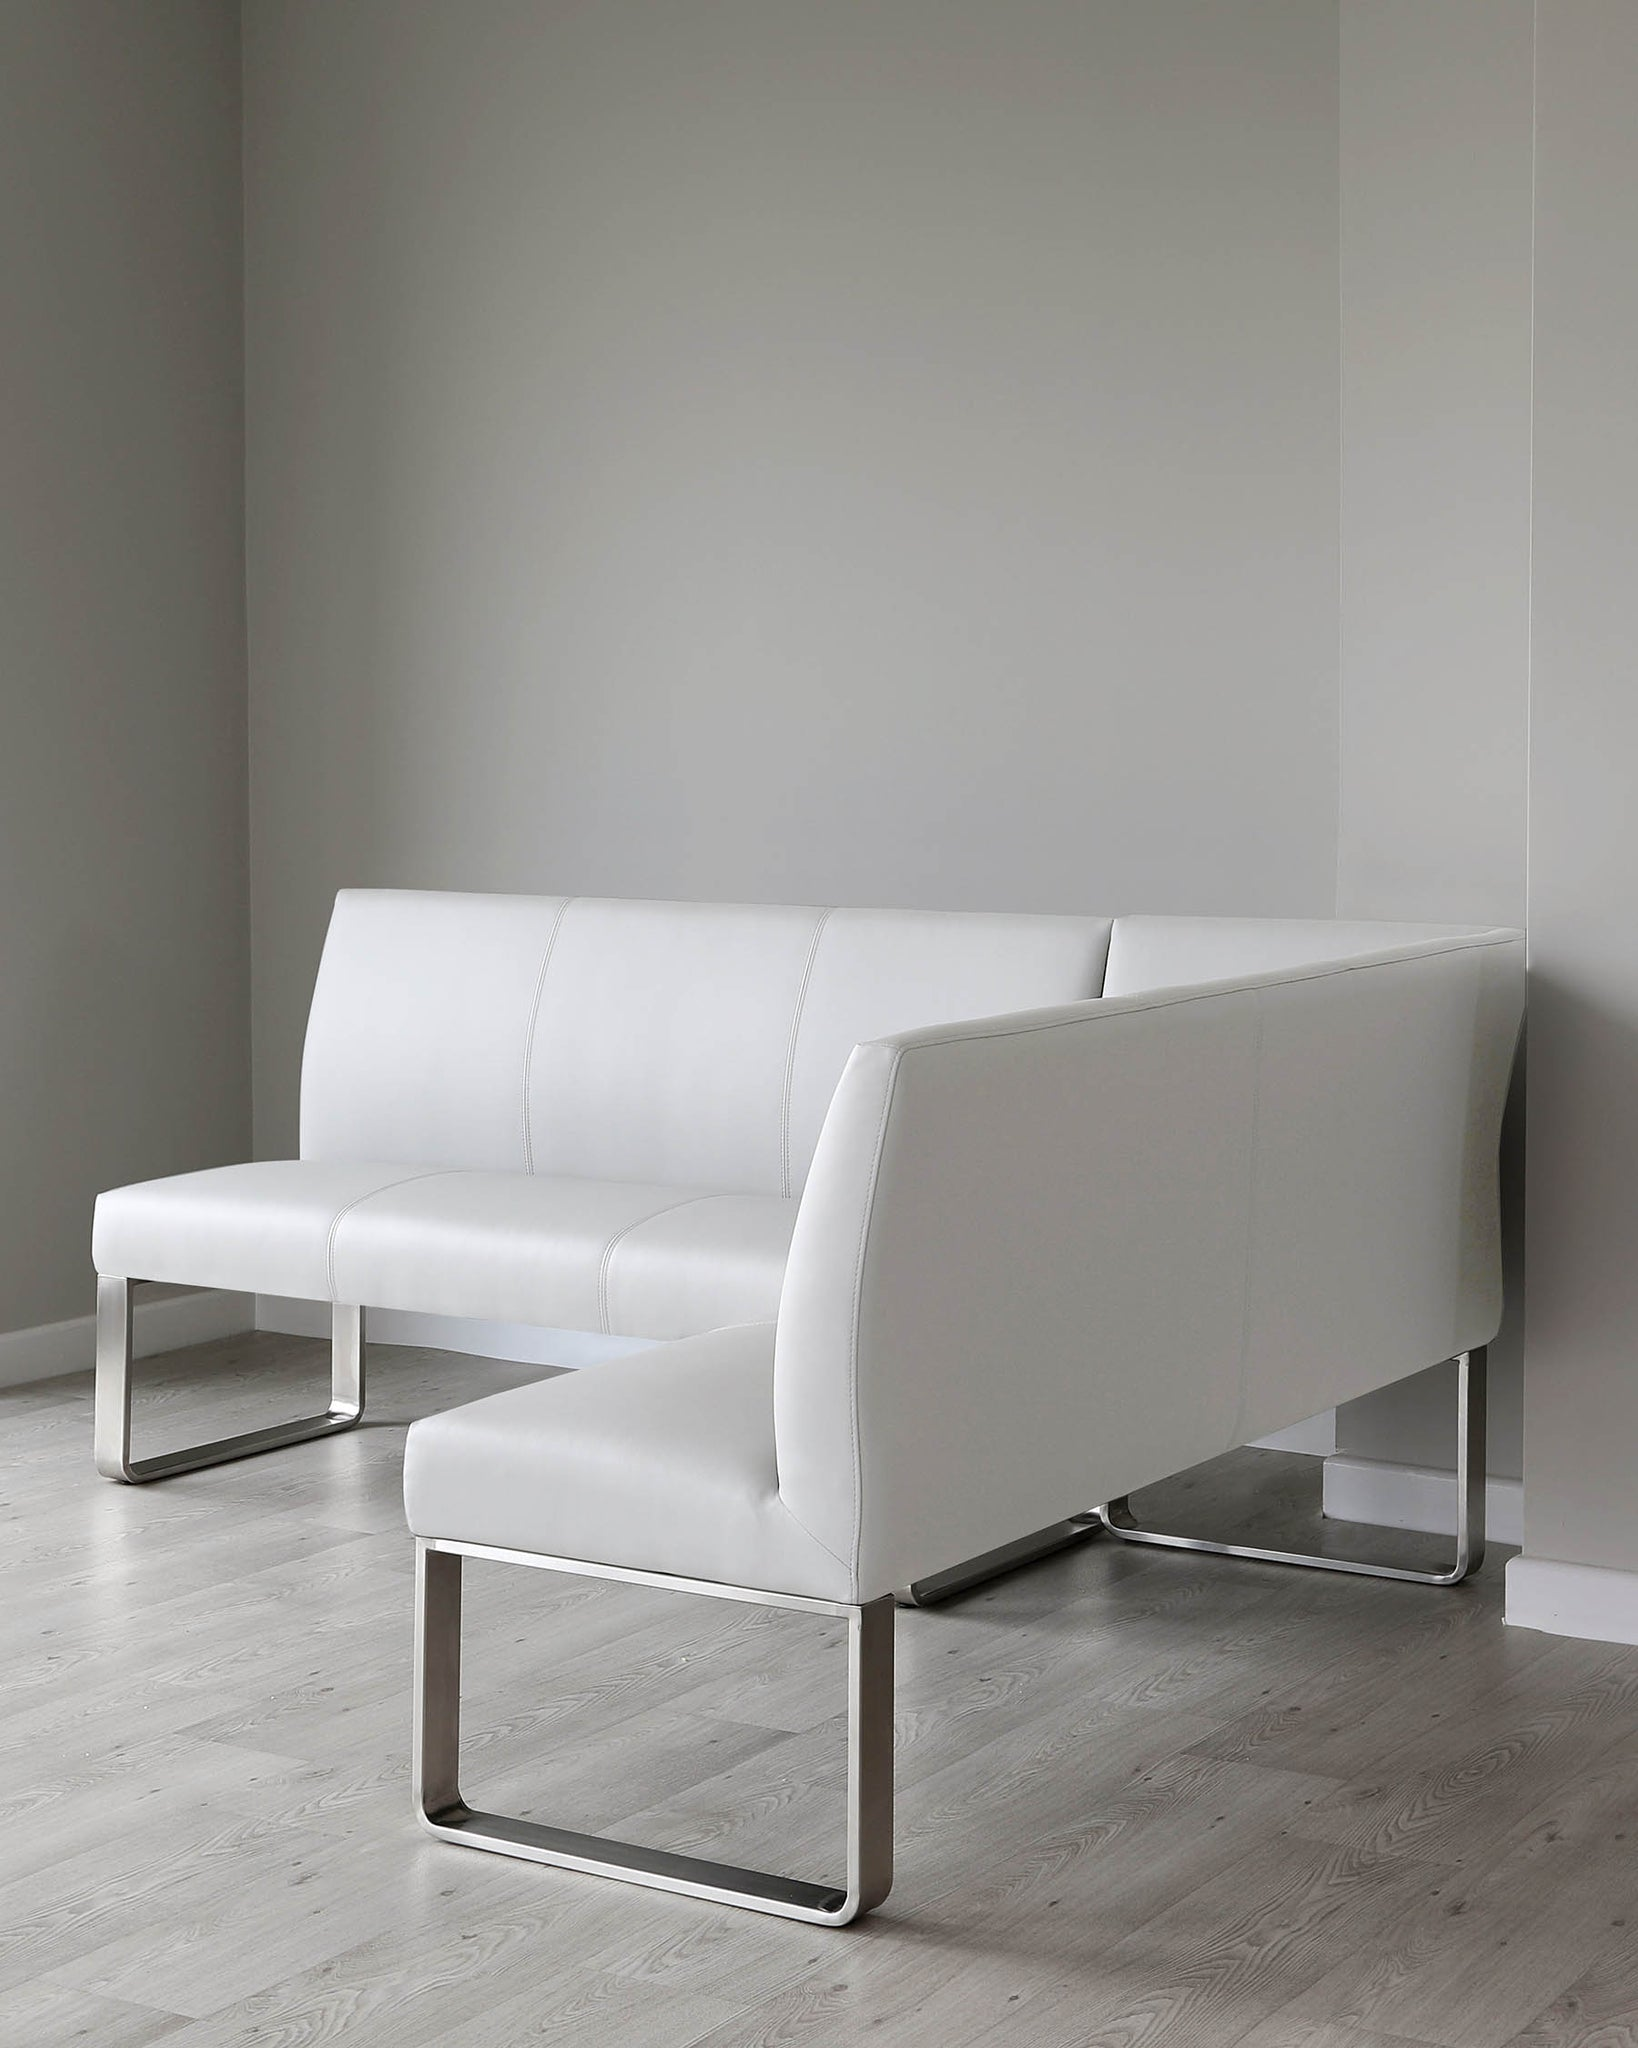 Loop 5 Seater Light Grey Faux Leather & Stainless Steel Left Hand Corner Bench